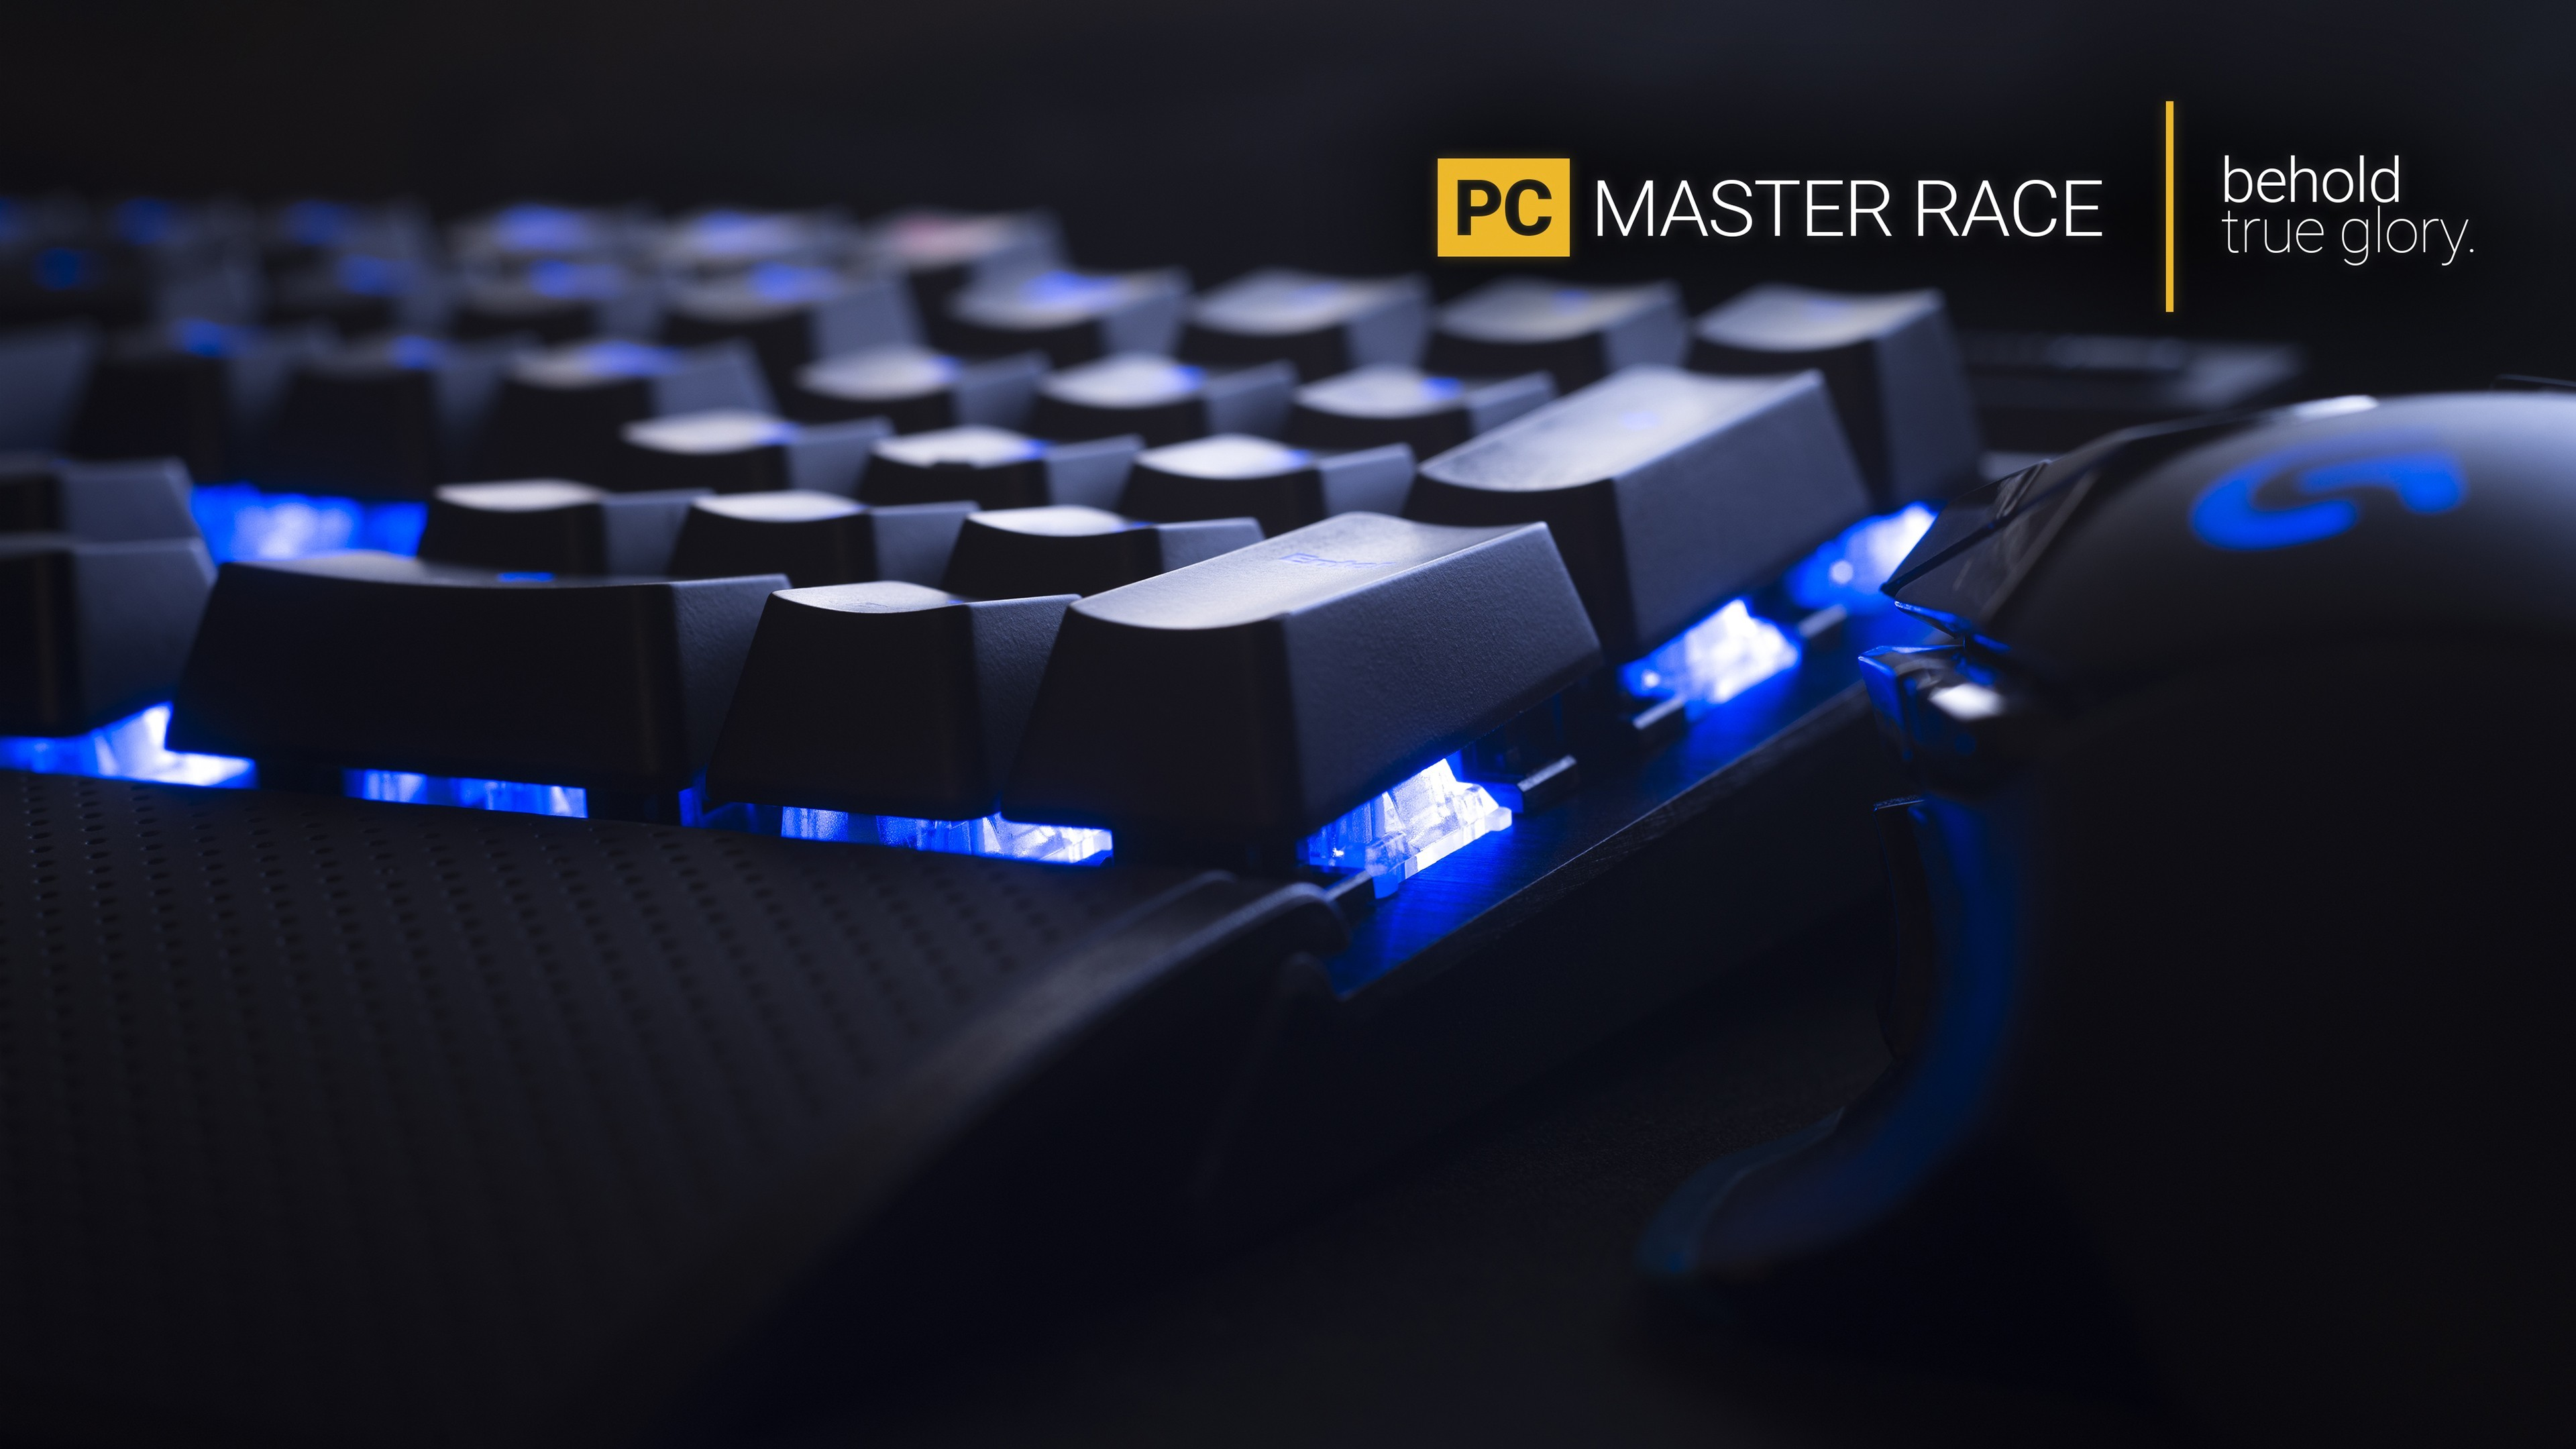 General PC gaming Master Race keyboards technology computer mice  hardware computer PC Master Race computer